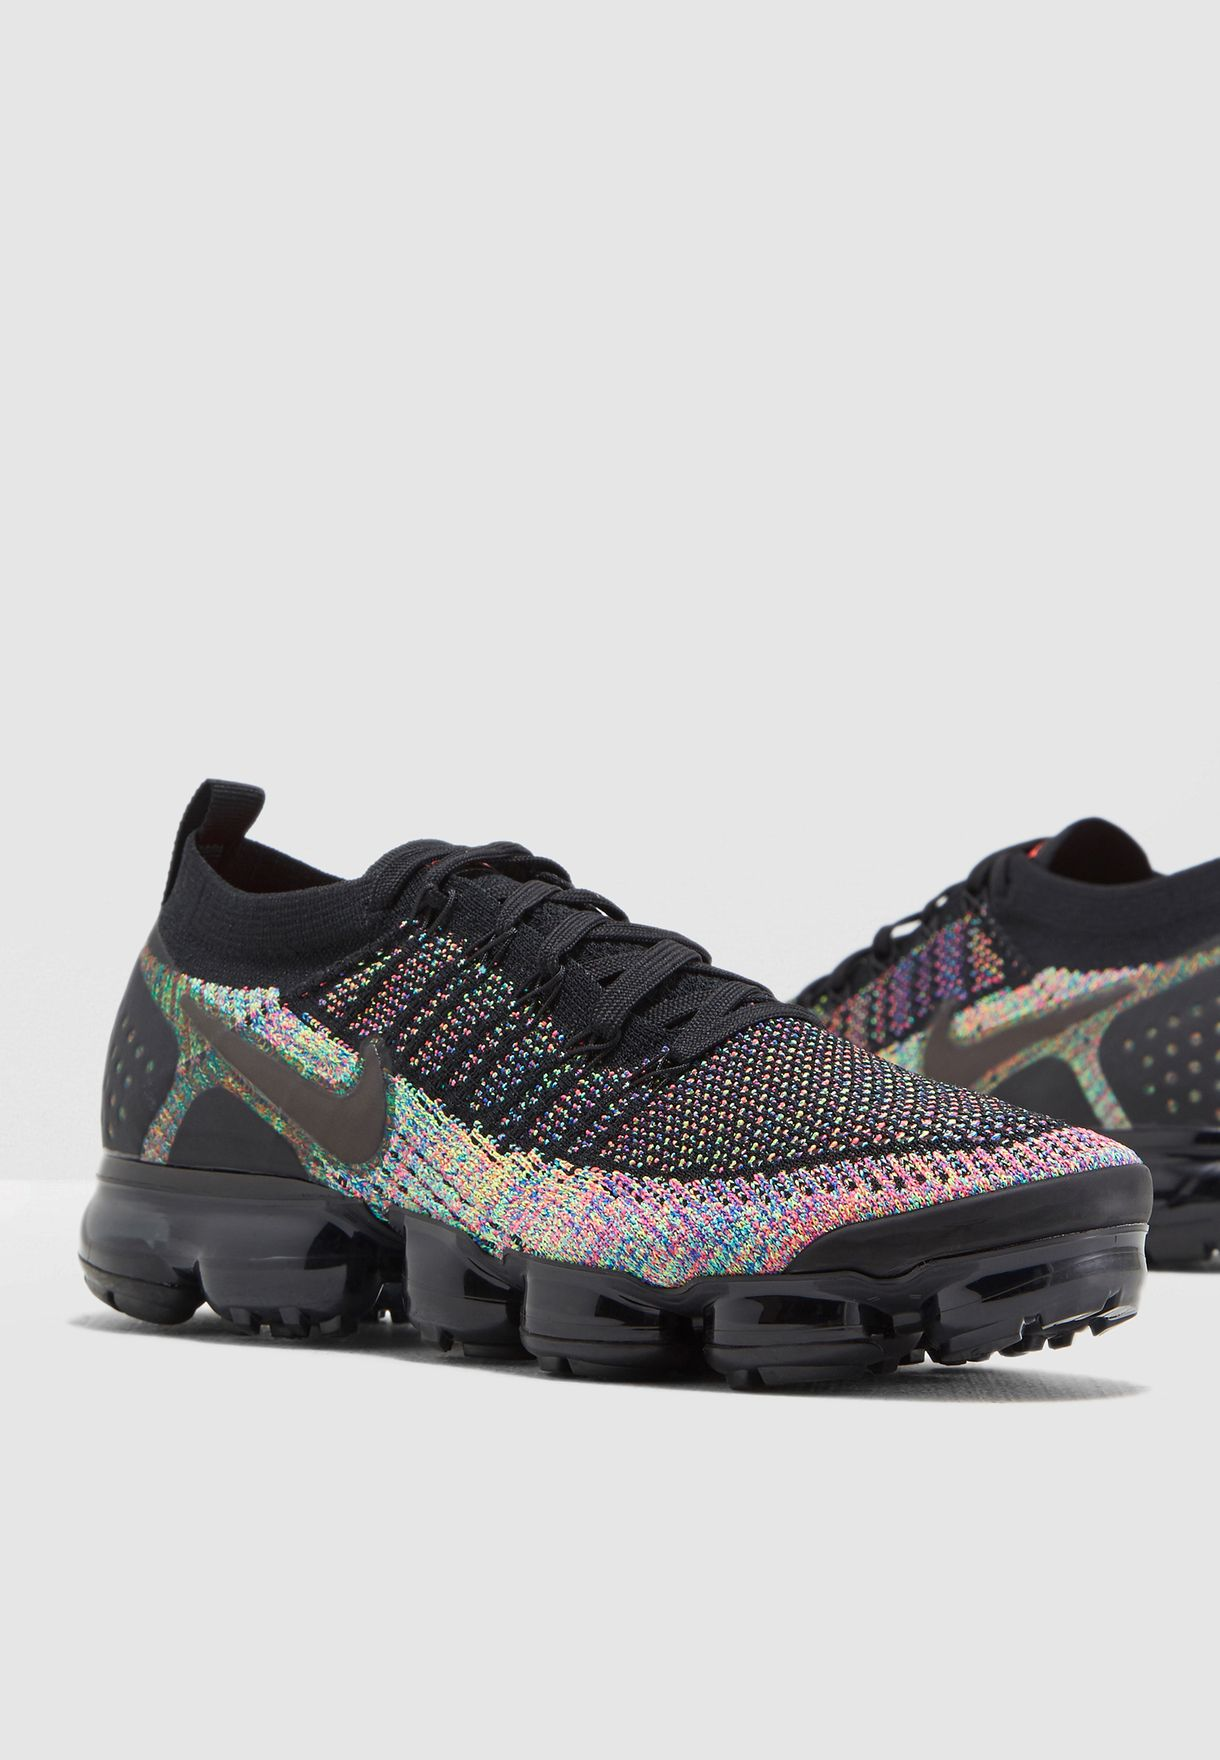 c304a31aae71 Shop Nike multicolor Air Vapormax Flyknit 2 942842-017 for Men in ...